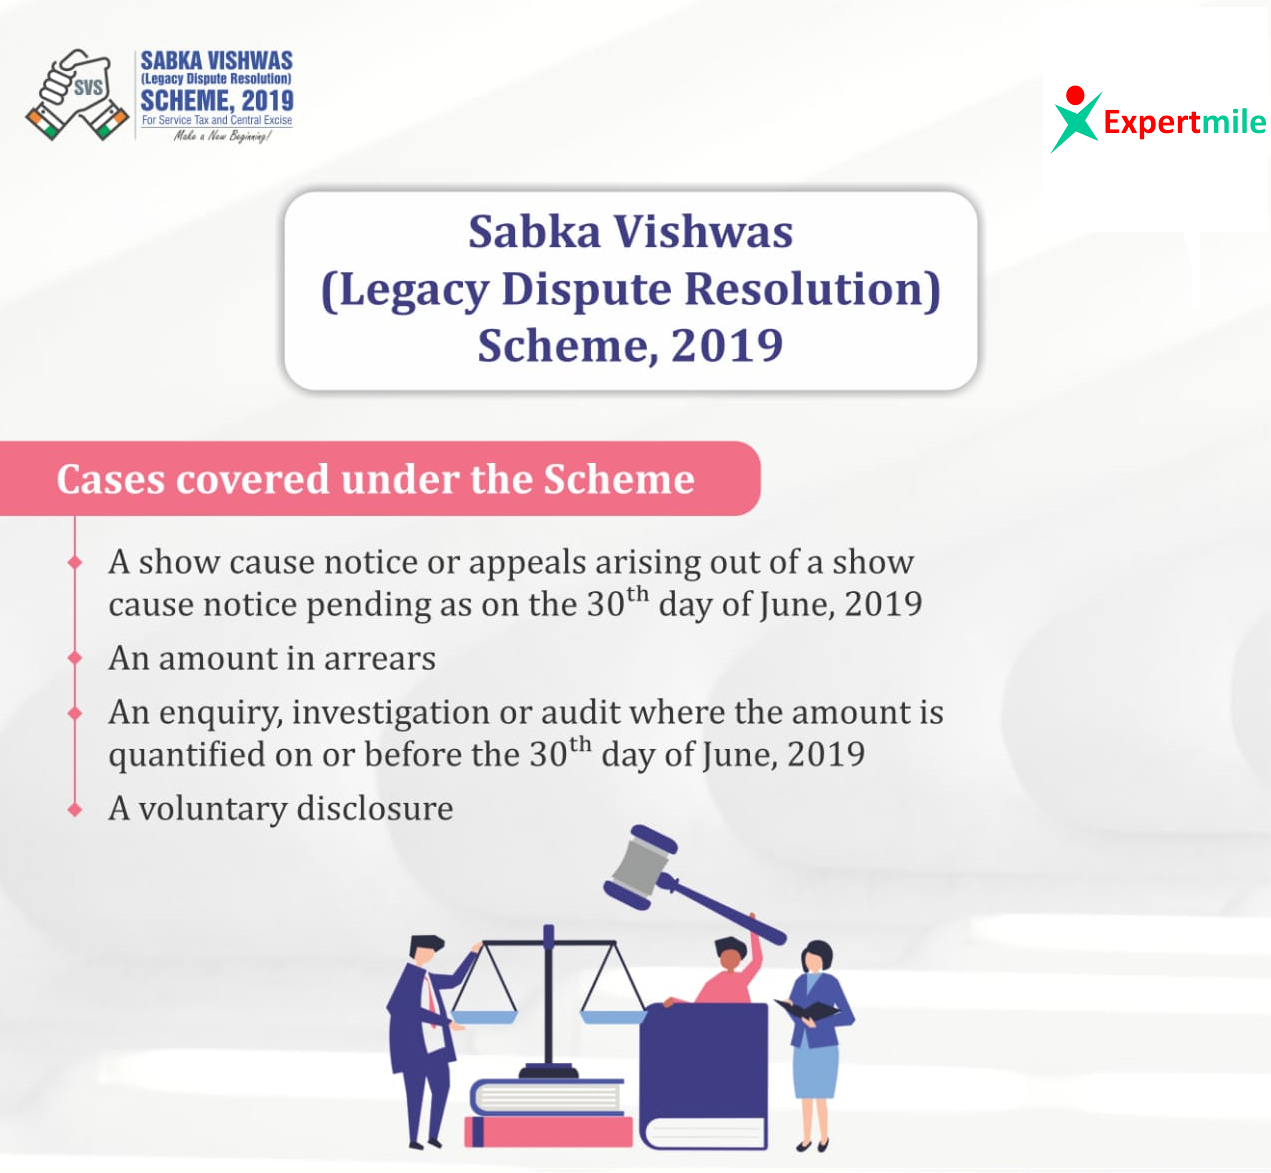 Sabka Vishwas (Legacy Dispute Resolution) Scheme, 2019 for Service Tax and Central Excise will be open from 1st September, 2019 providing dispute resolution and amnesty